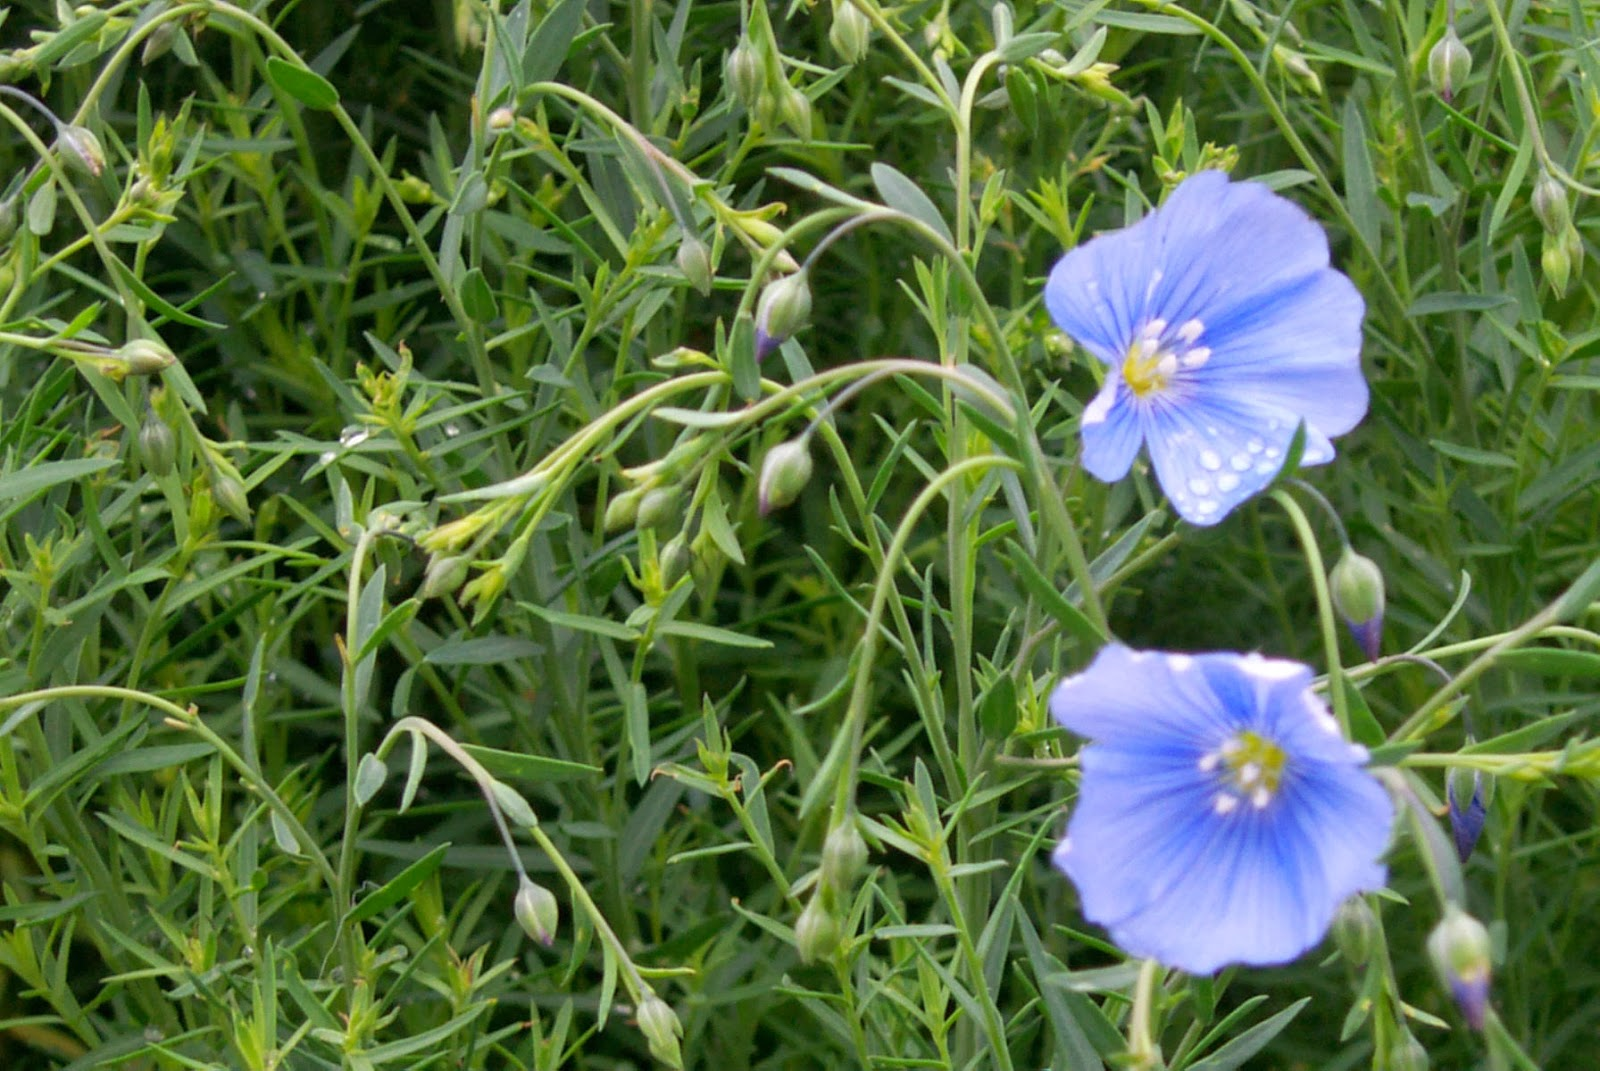 Northern Ireland - Discovering Fibres: Flax